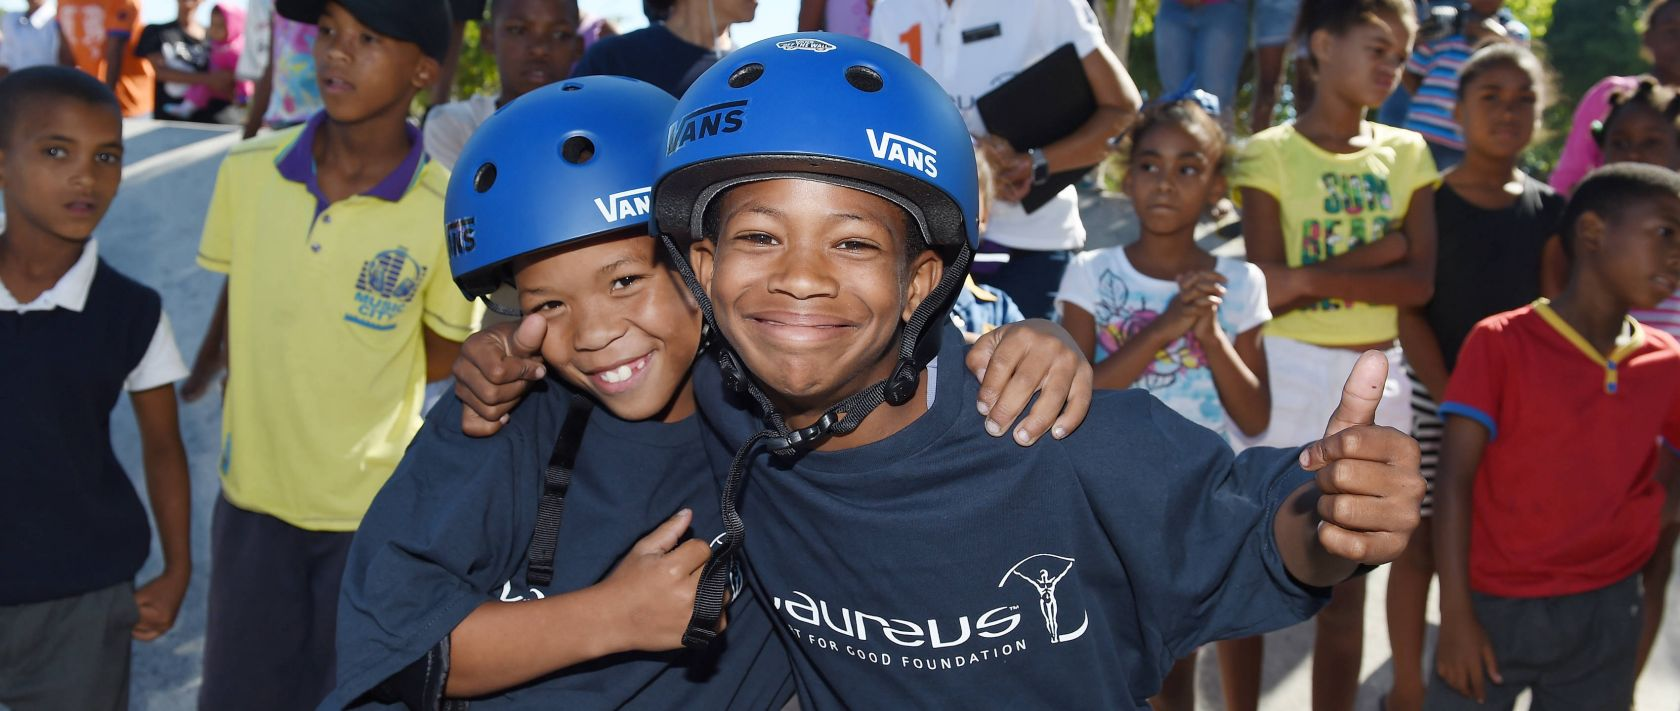 In 2018, nearly 300,000 young people all over the world directly benefited from more than 160 Laureus Sport for Good-supported programmes in 40 countries.